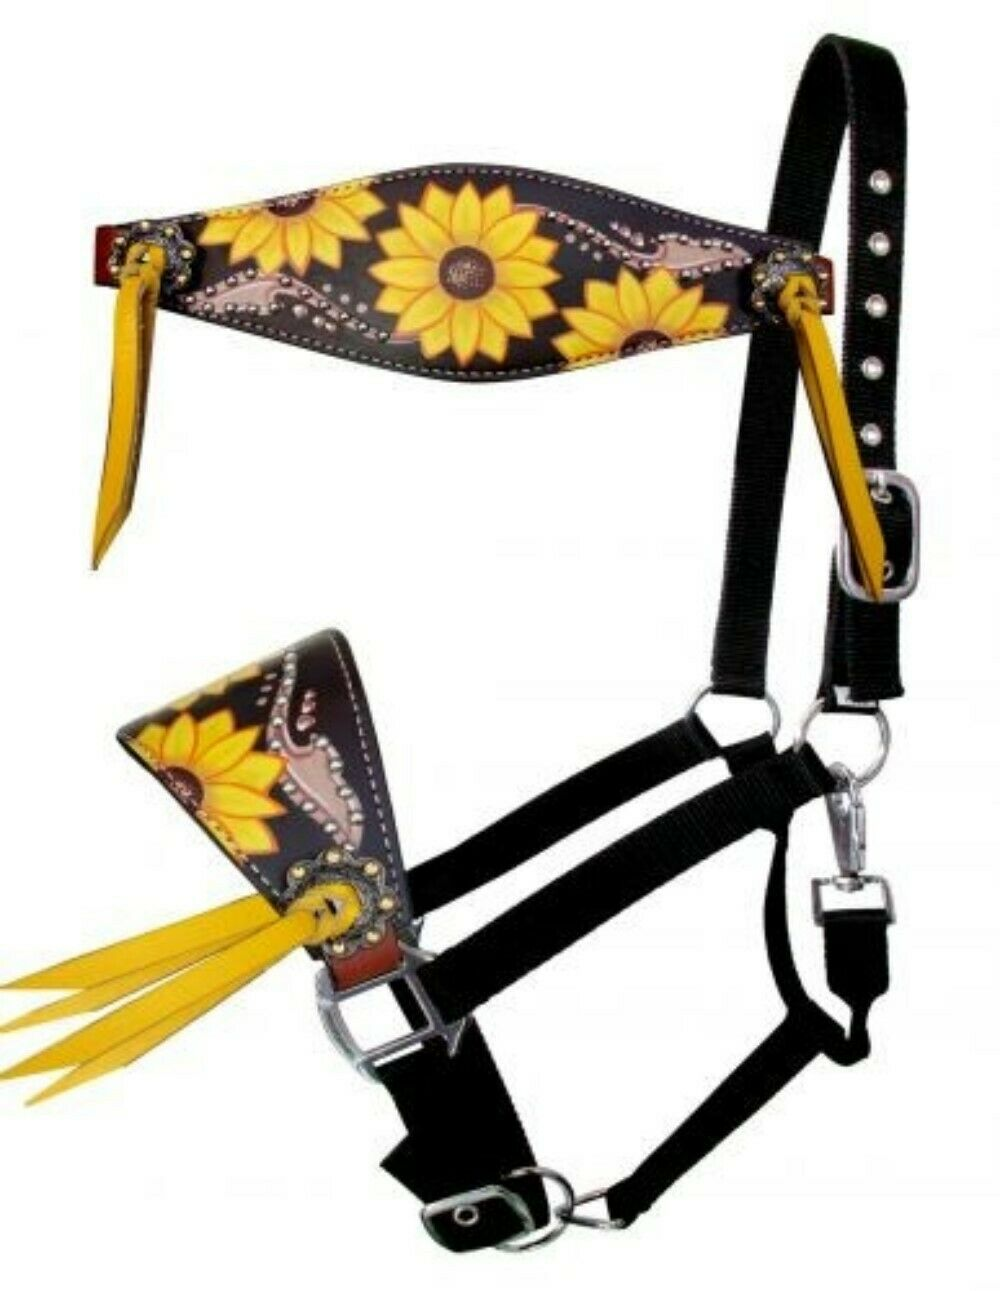 Western Saddle Horse Bronc Halter W Hand Painted Sunflower On Leather Design Sporting Goods Halters Romeinformation It